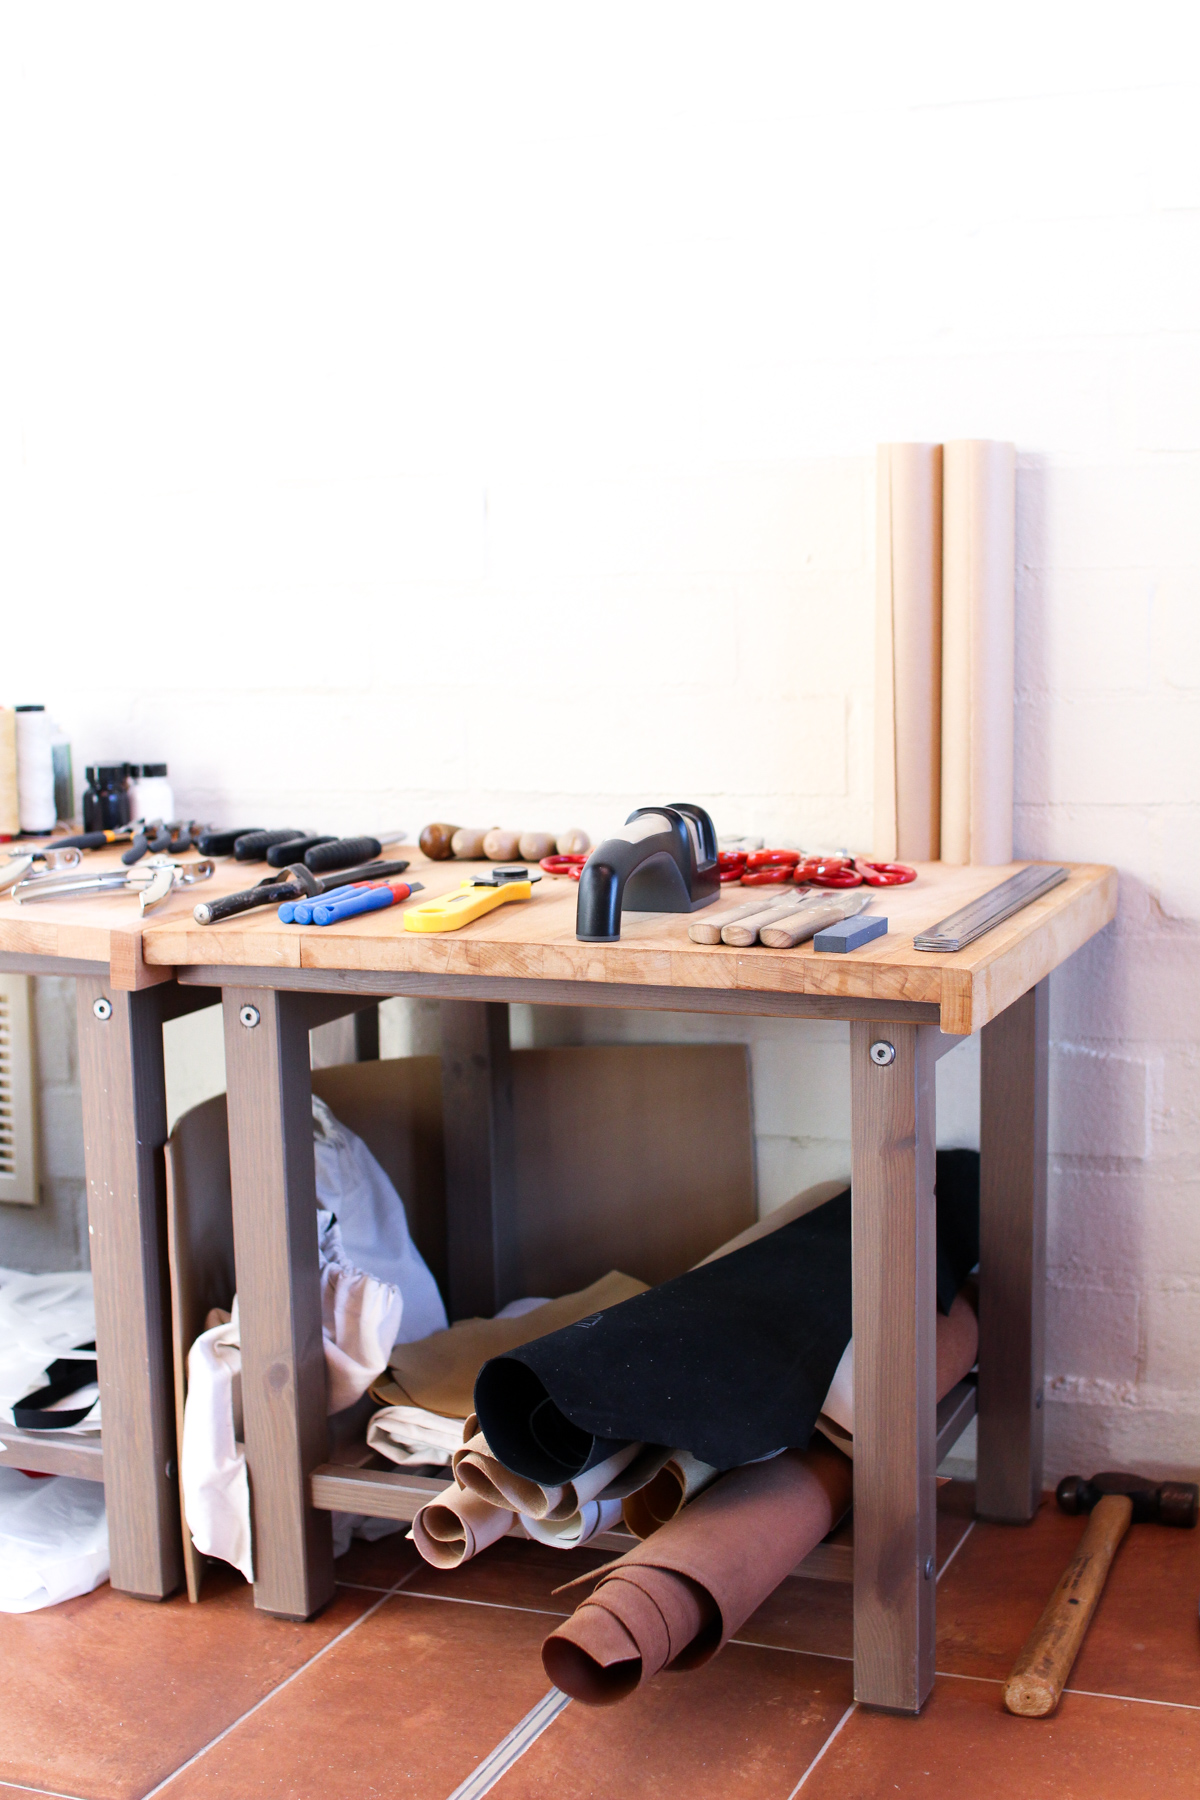 Making shoes with The Shoe Camaraderie // Megan Nielsen Design Diary